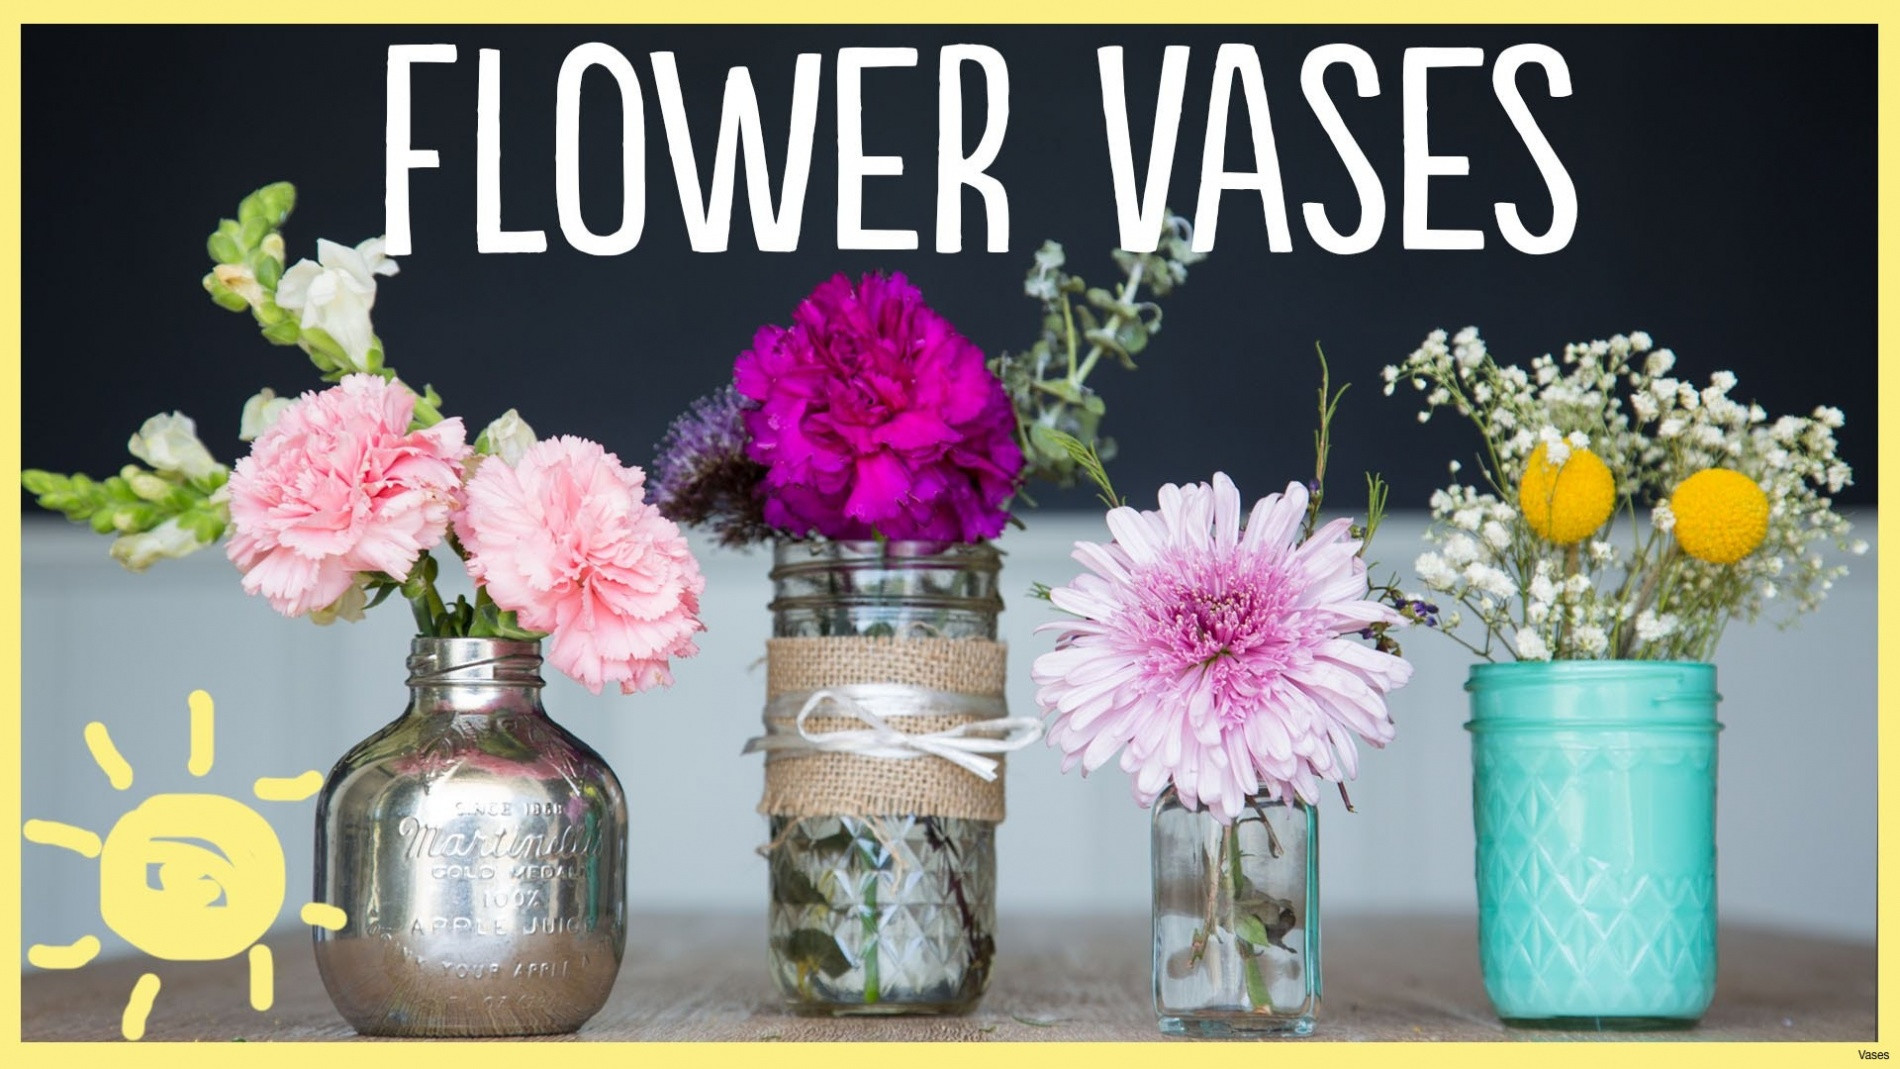 mason jar vase of maha de vase des fleurs mahagranda de home regarding h vases flower vase crafts i 0d